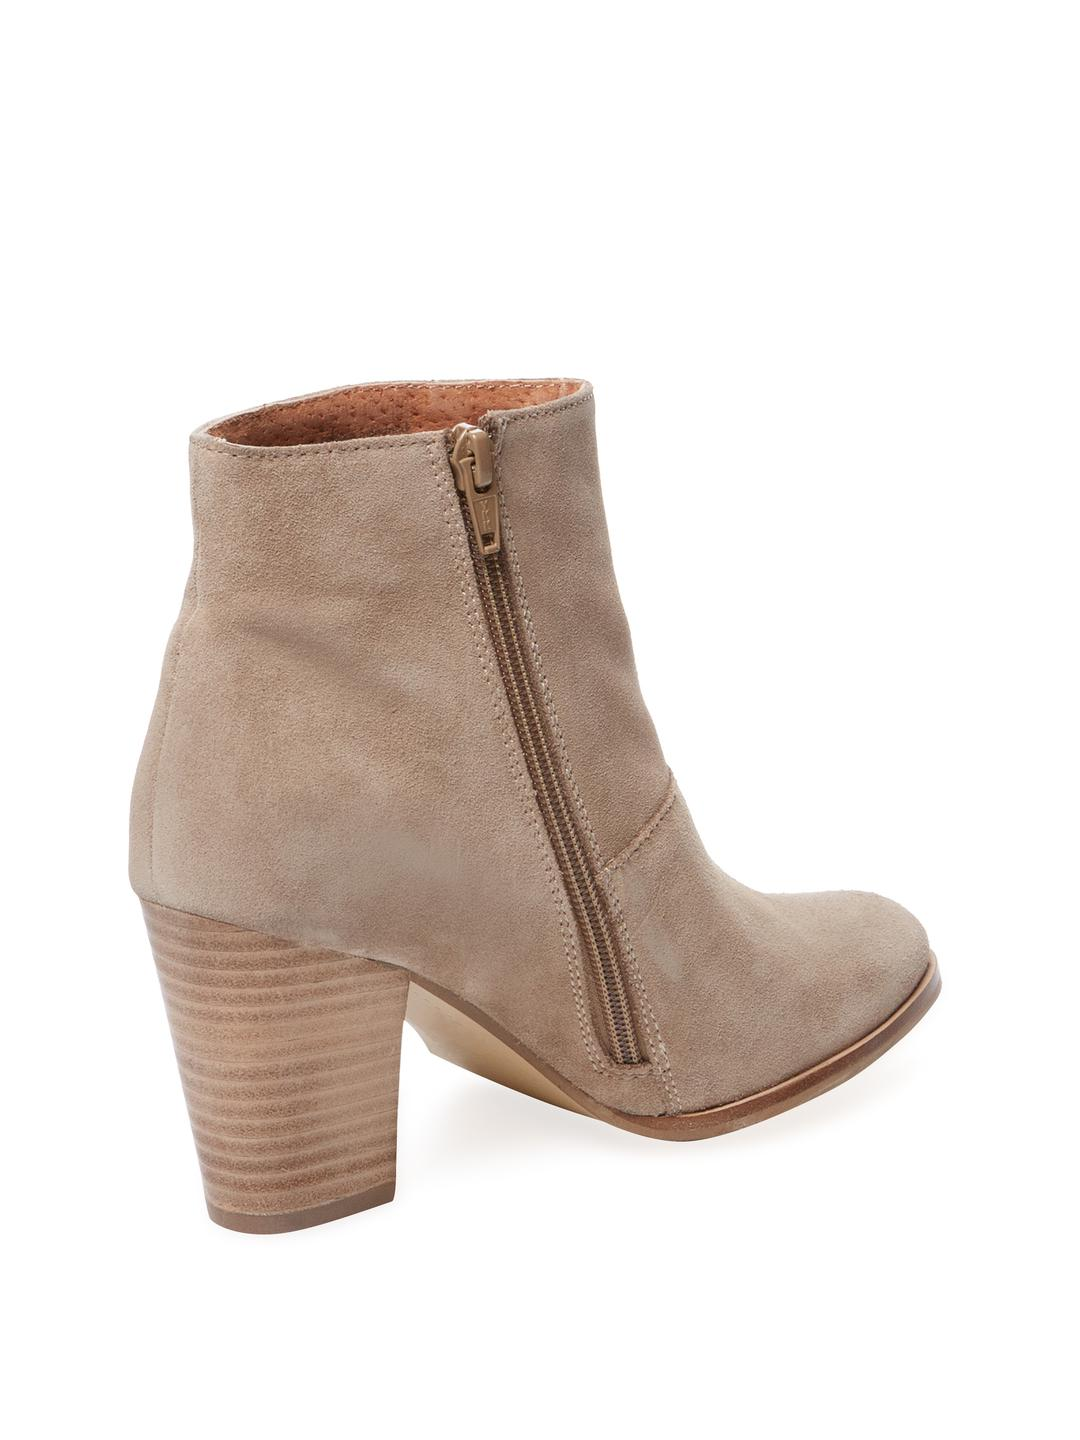 Seychelles Suede Travels High-heel Ankle Boots in Beige (Natural)